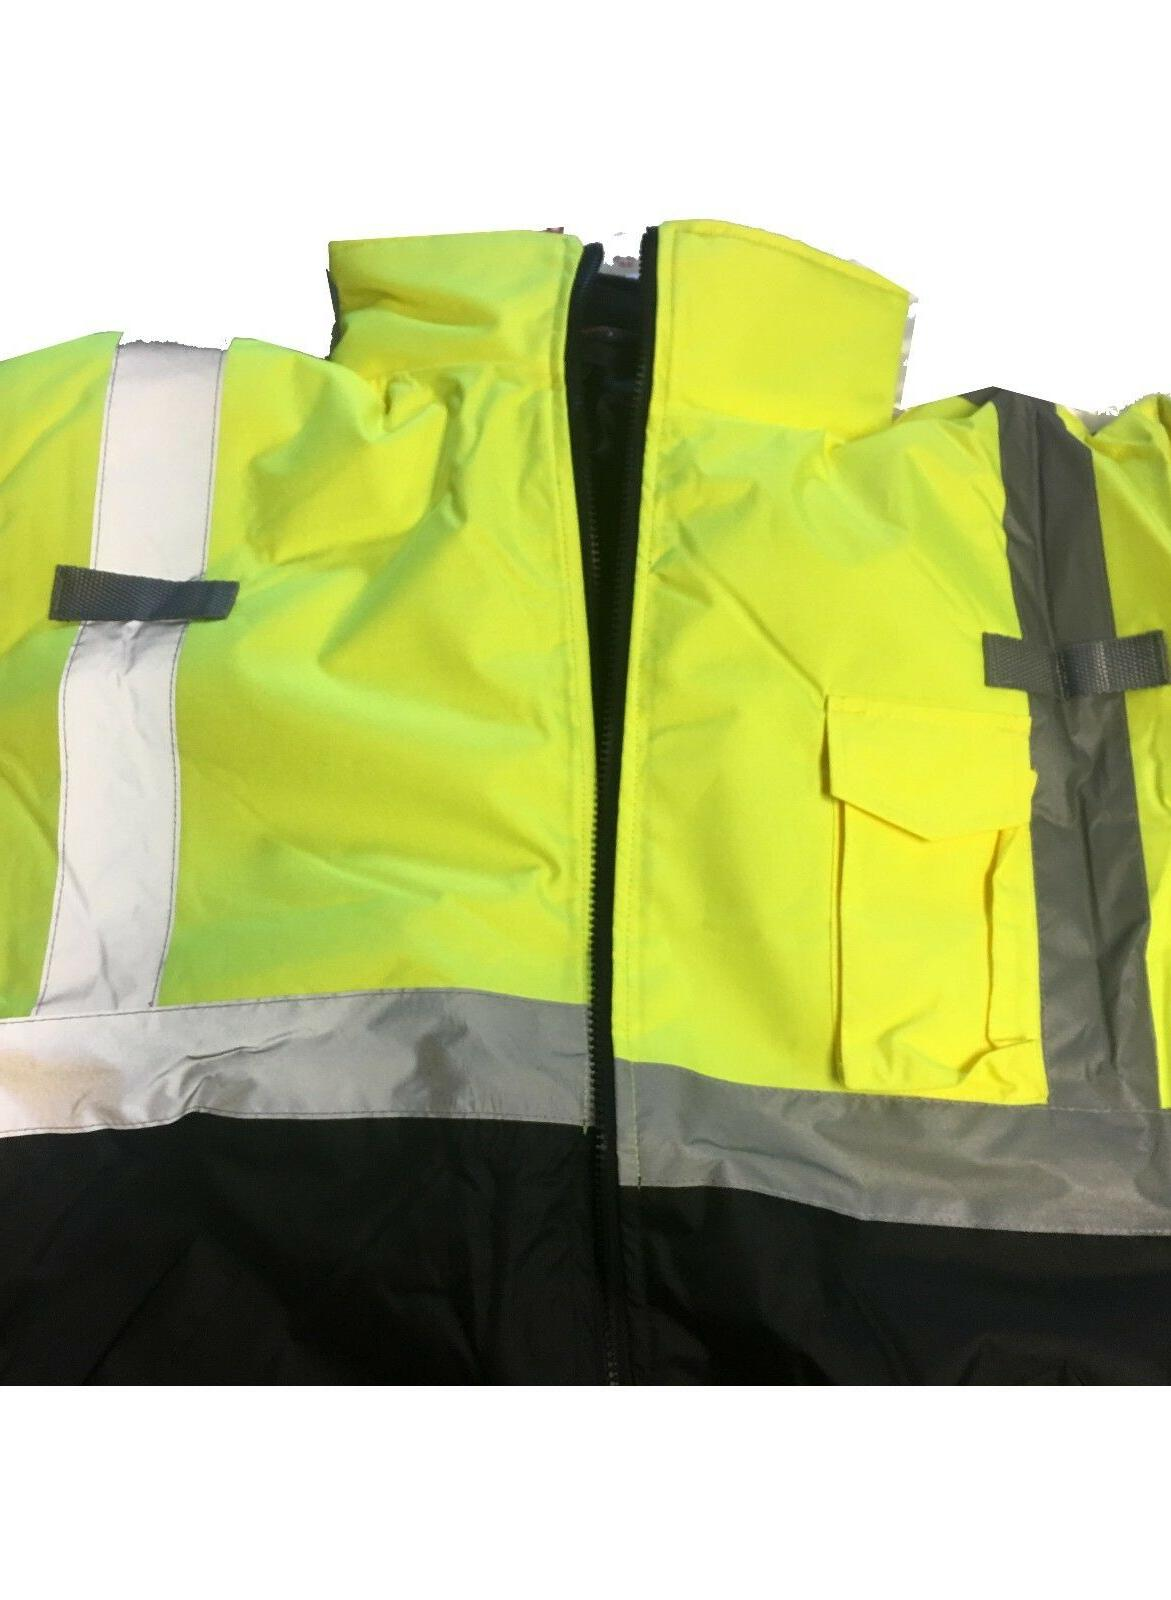 Hi Insulated Safety Bomber Work HIGH